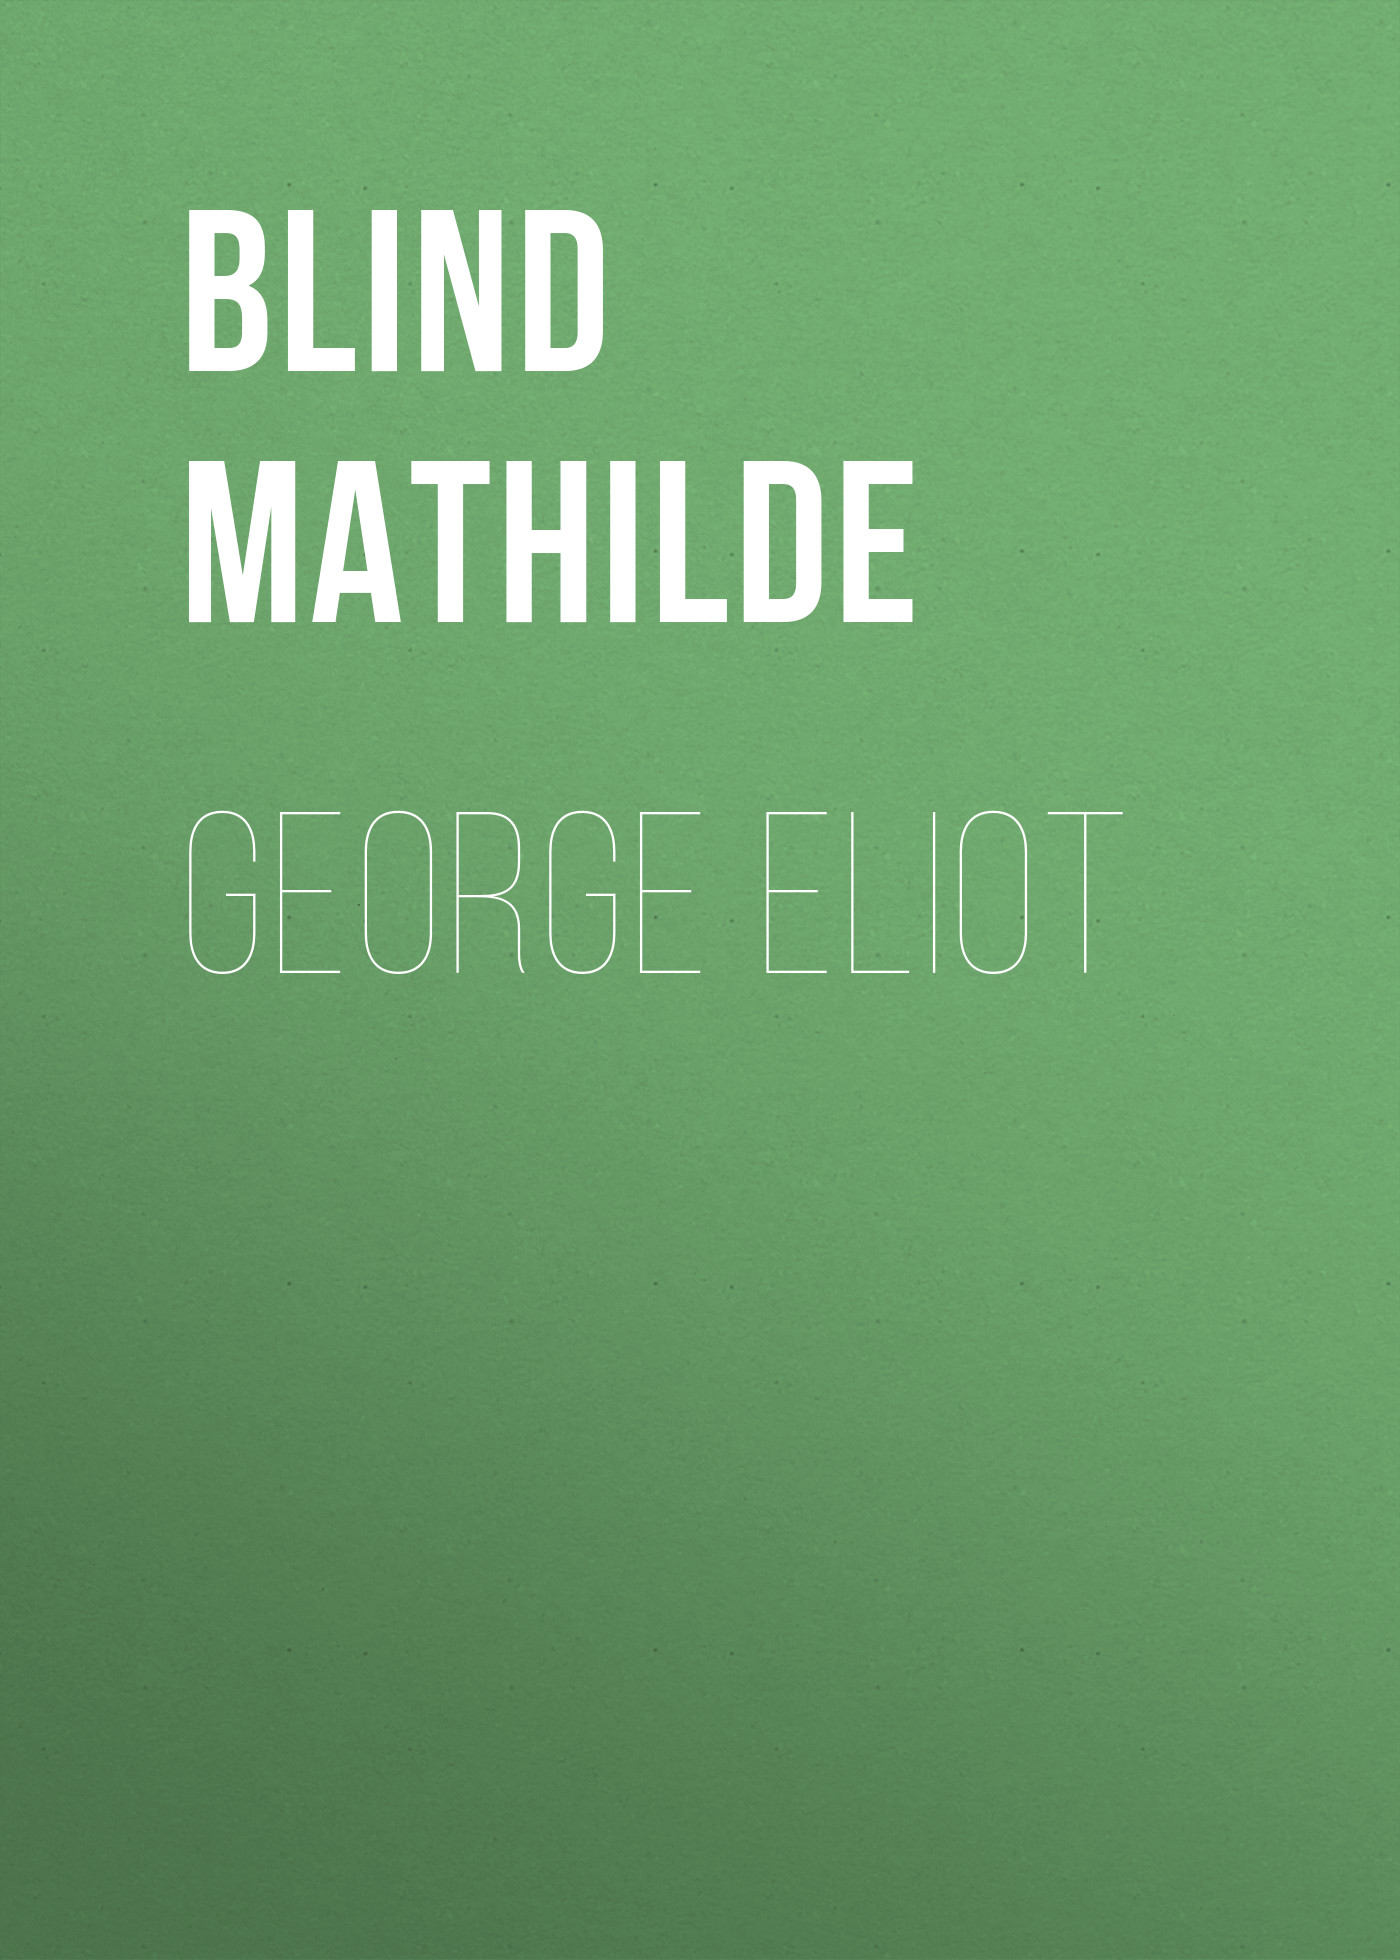 Blind Mathilde George Eliot george orwell 1984